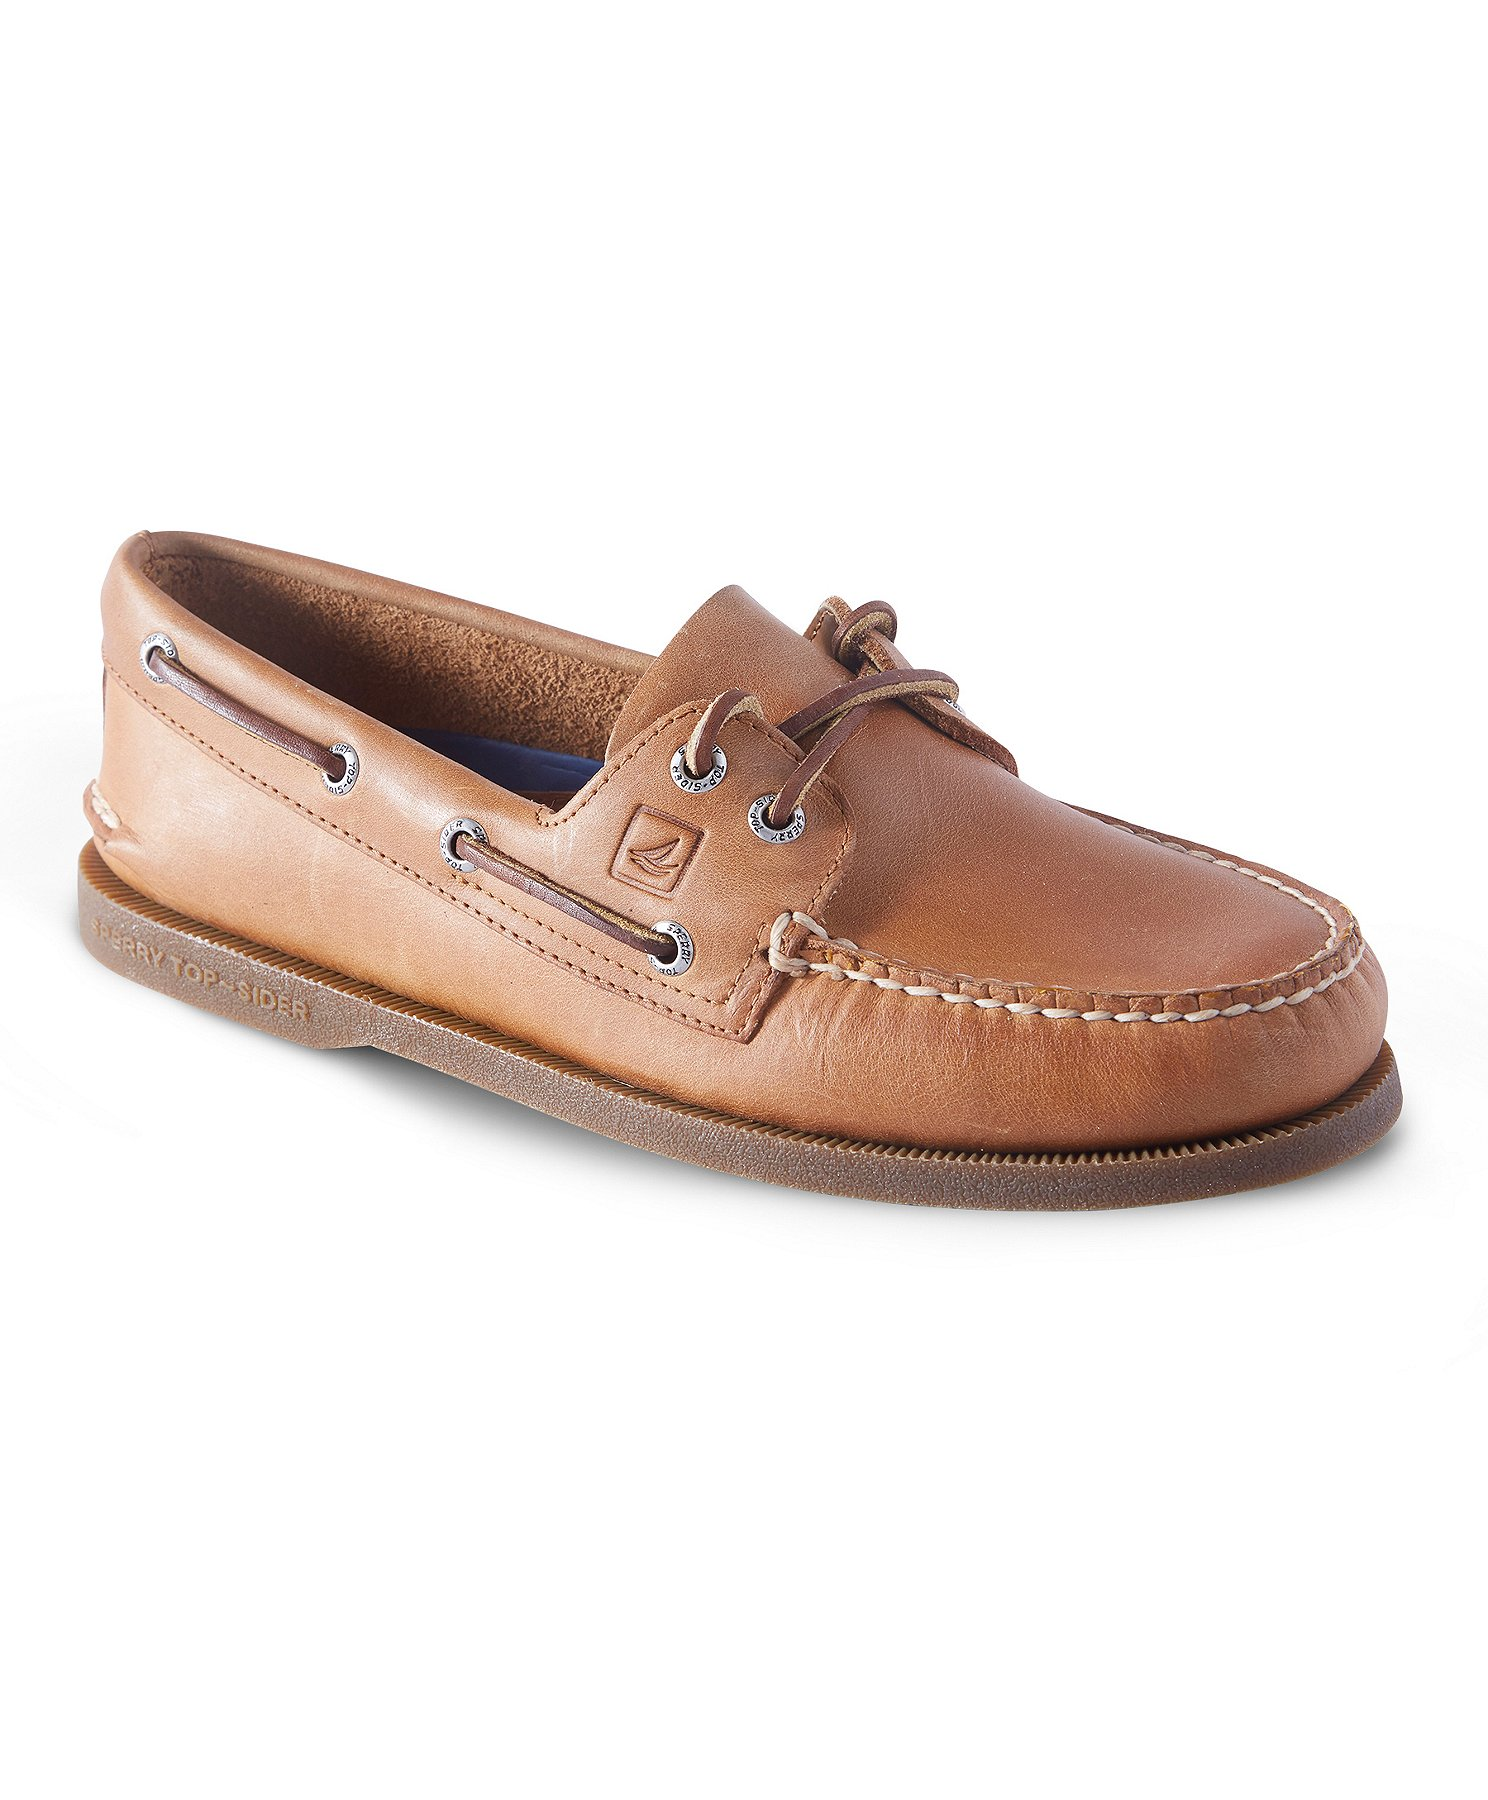 Men S Sperry Boat Shoes Wide 4e Mark